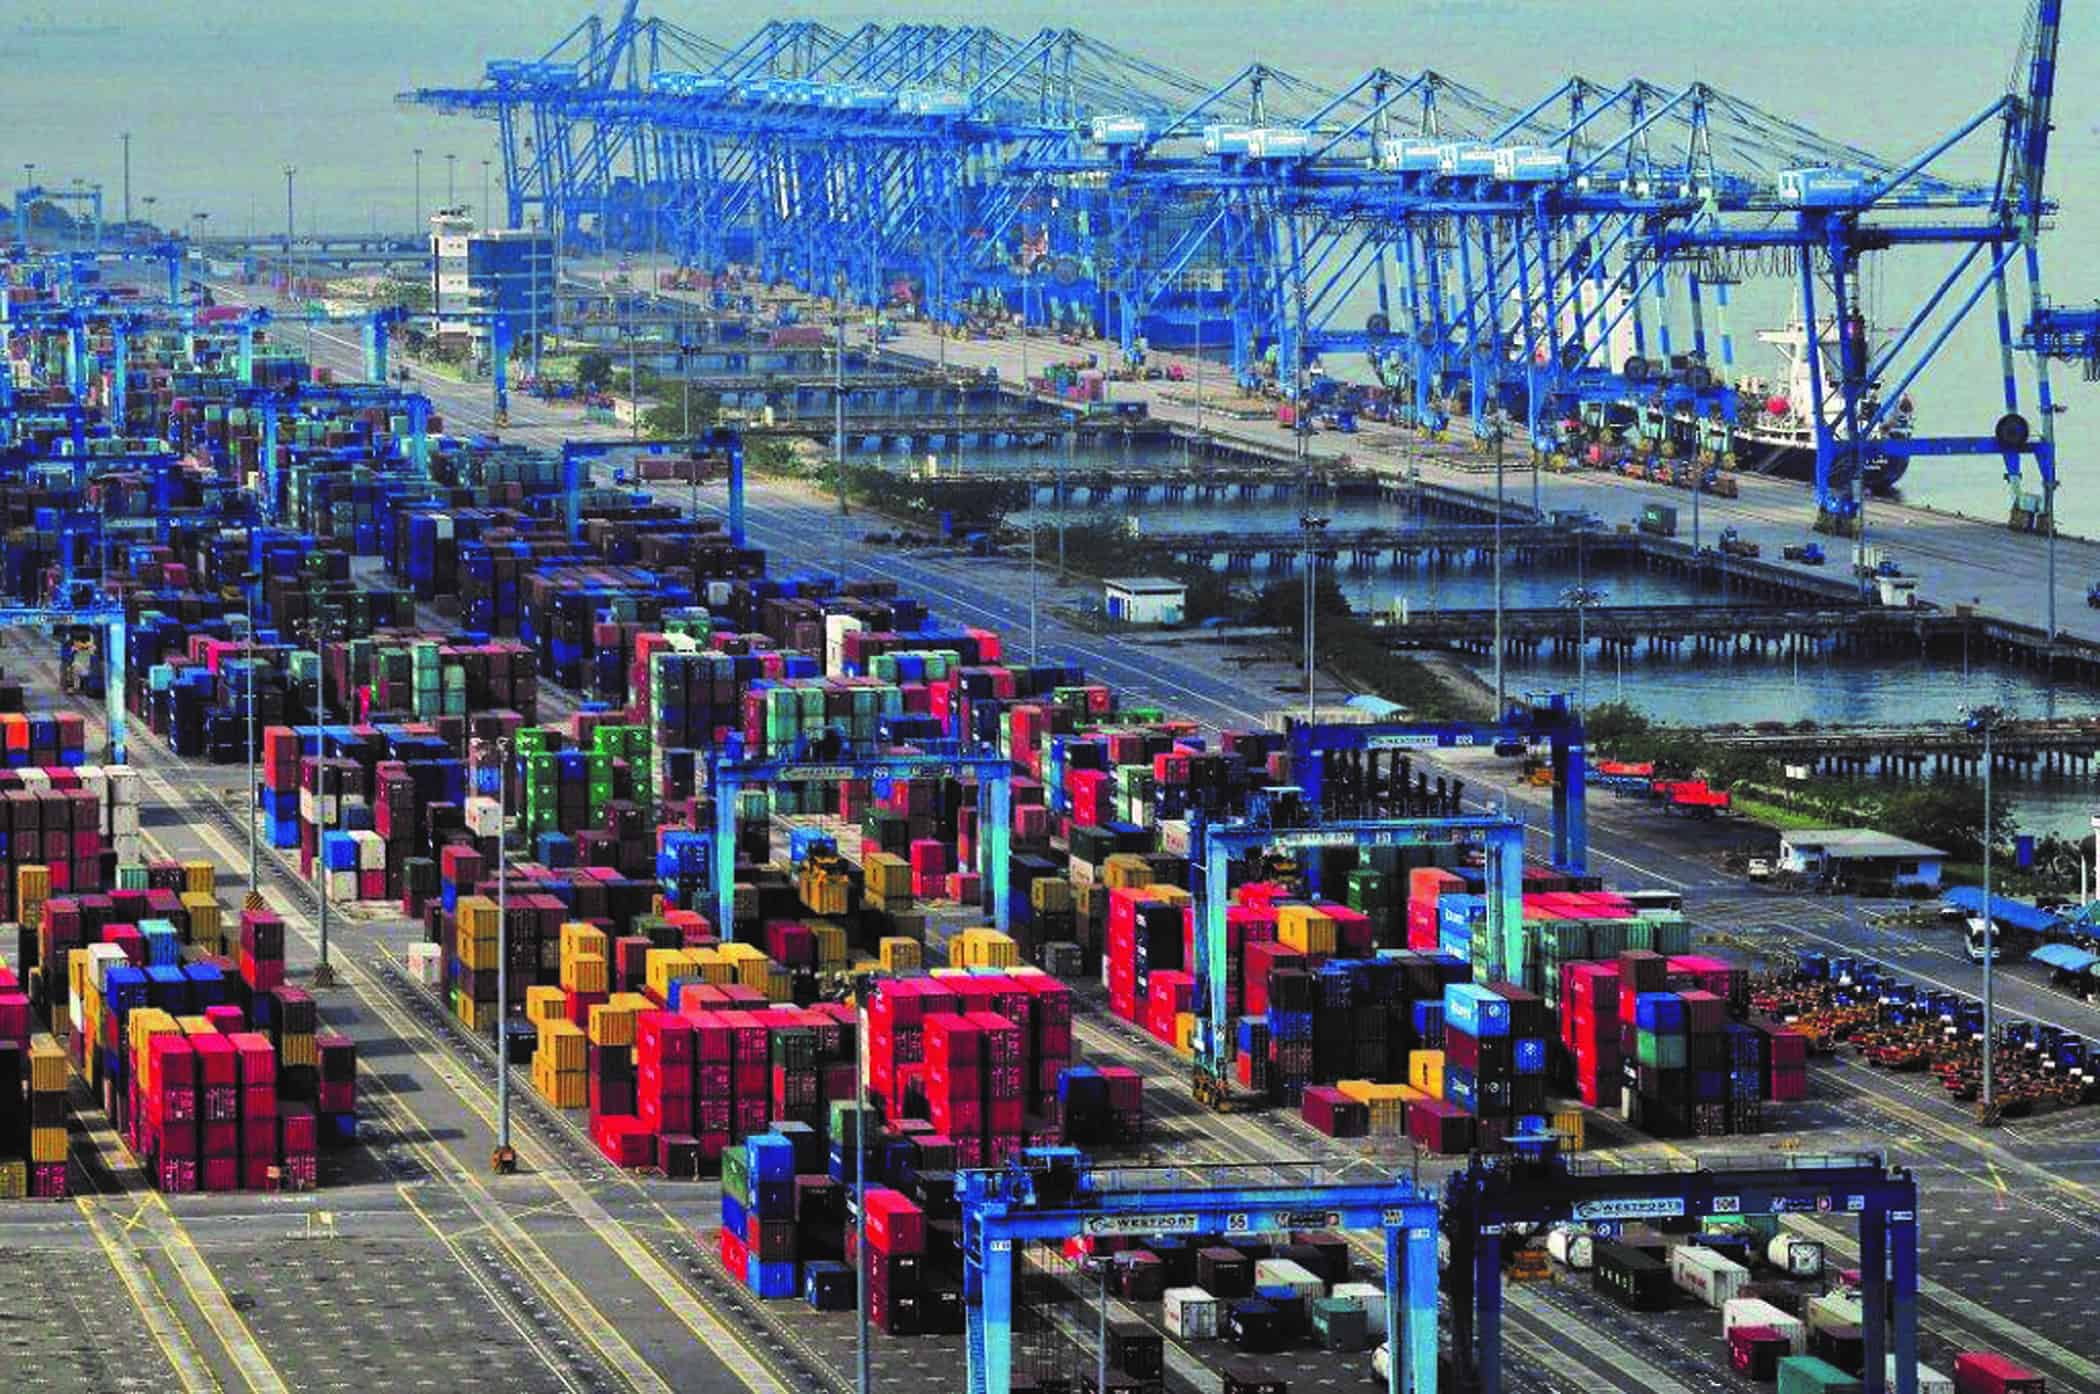 Port Klang orders 29 cranes from Mitsui Engineering